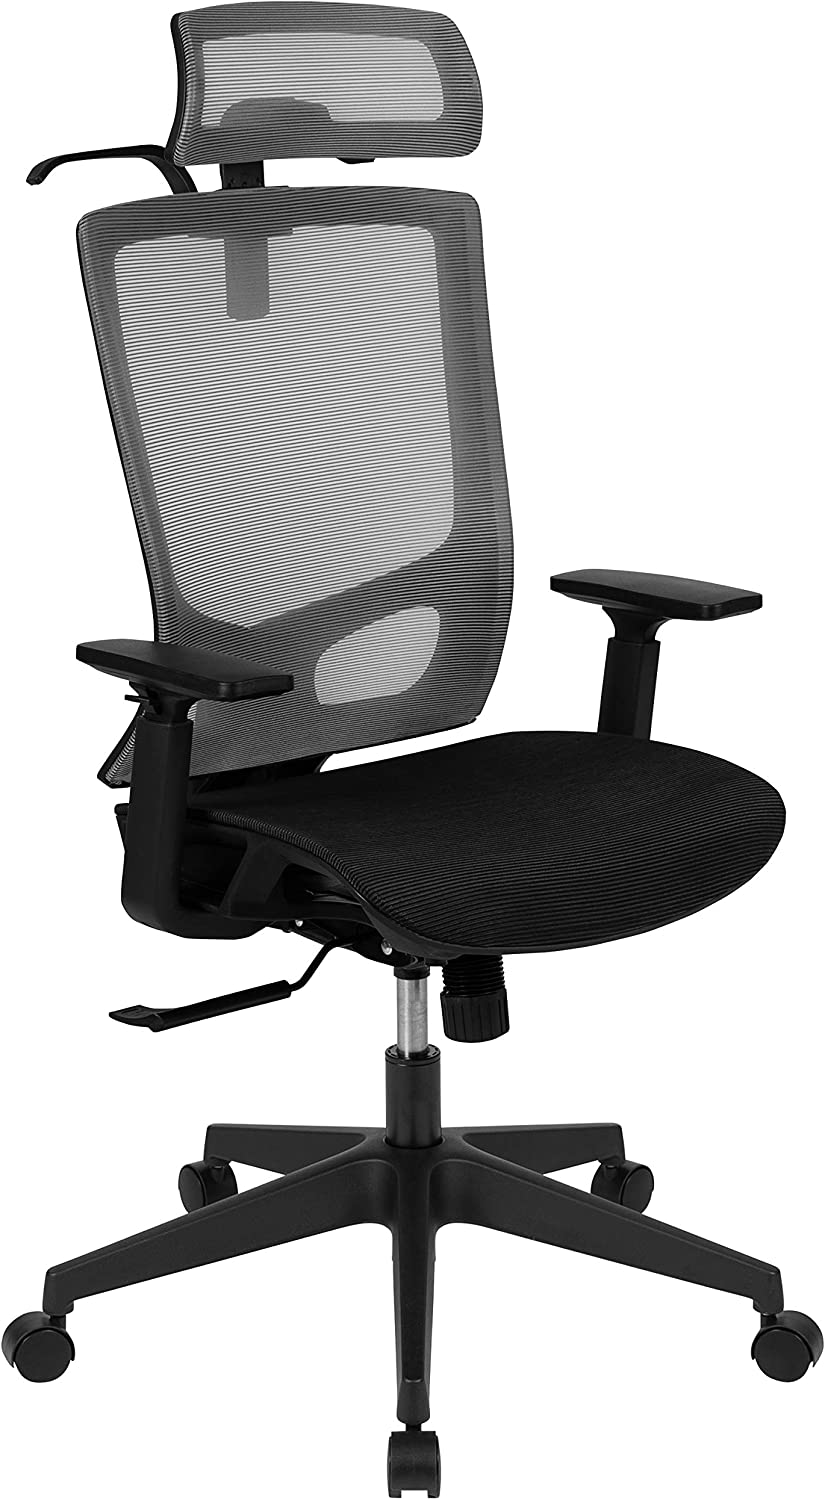 Flash Furniture Ergonomic Mesh Office Chair with Synchro-Tilt, Pivot Adjustable Headrest, Lumbar Support, Coat Hanger and Adjustable Arms in Gray/Black